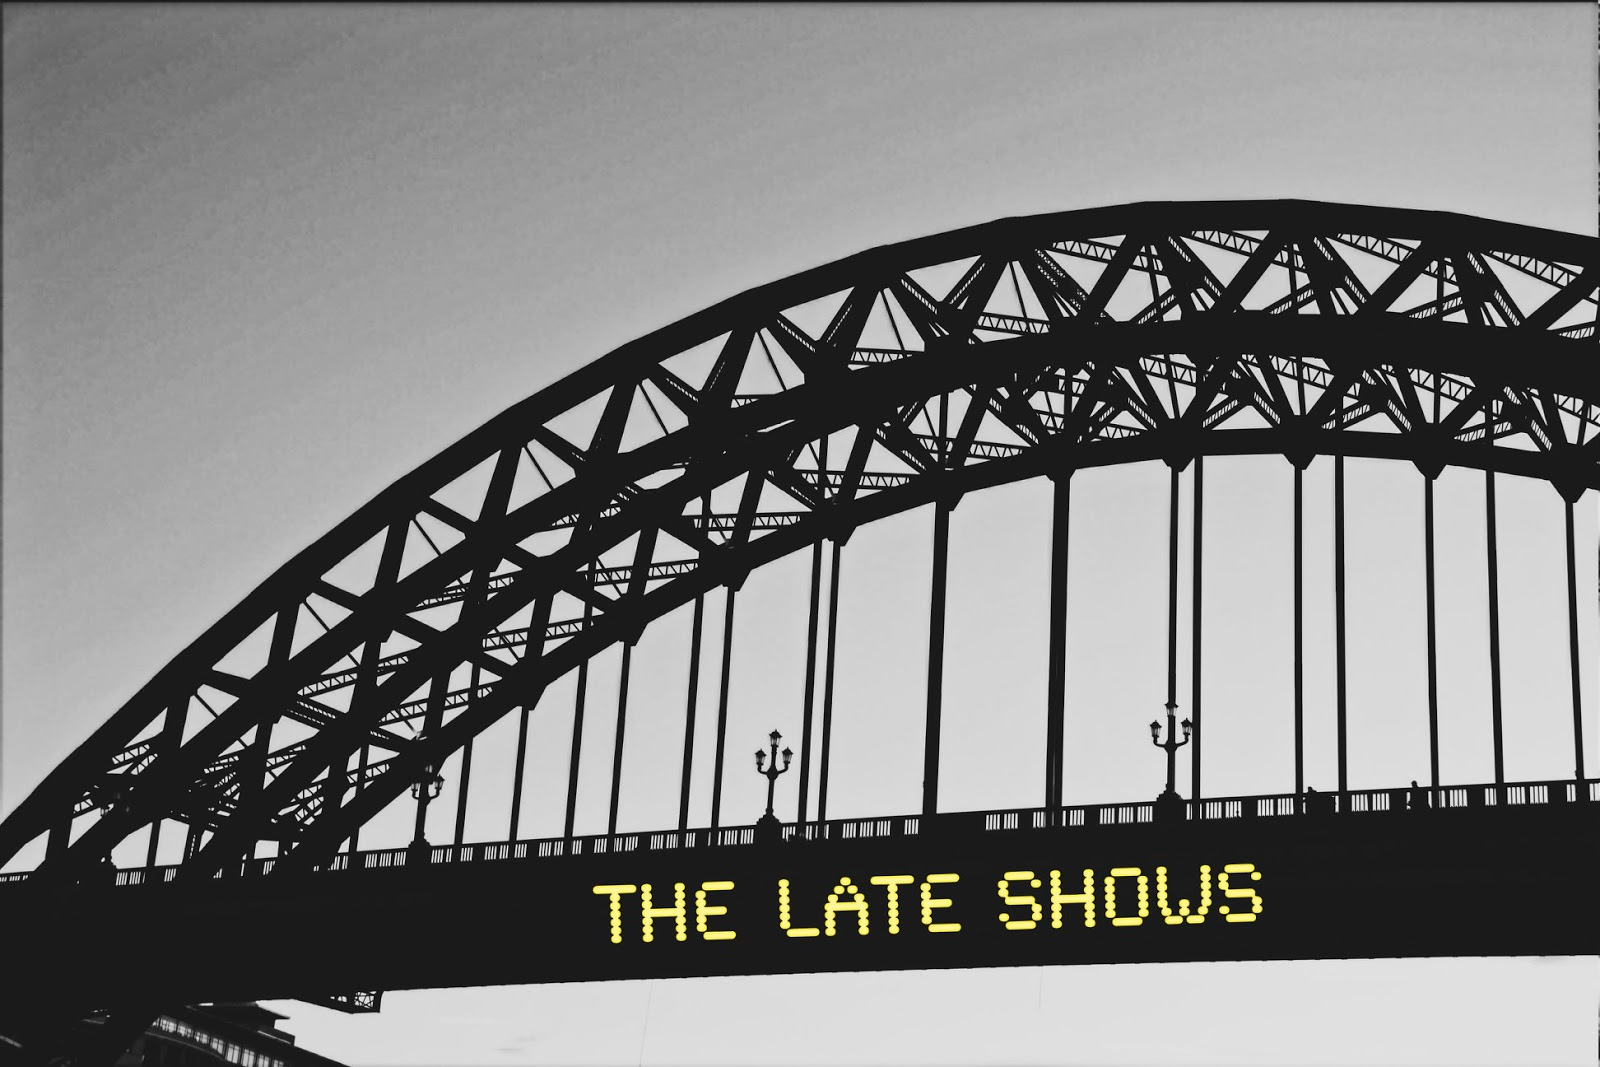 The Late Shows 2019 - Exploring Gateshead After Hours